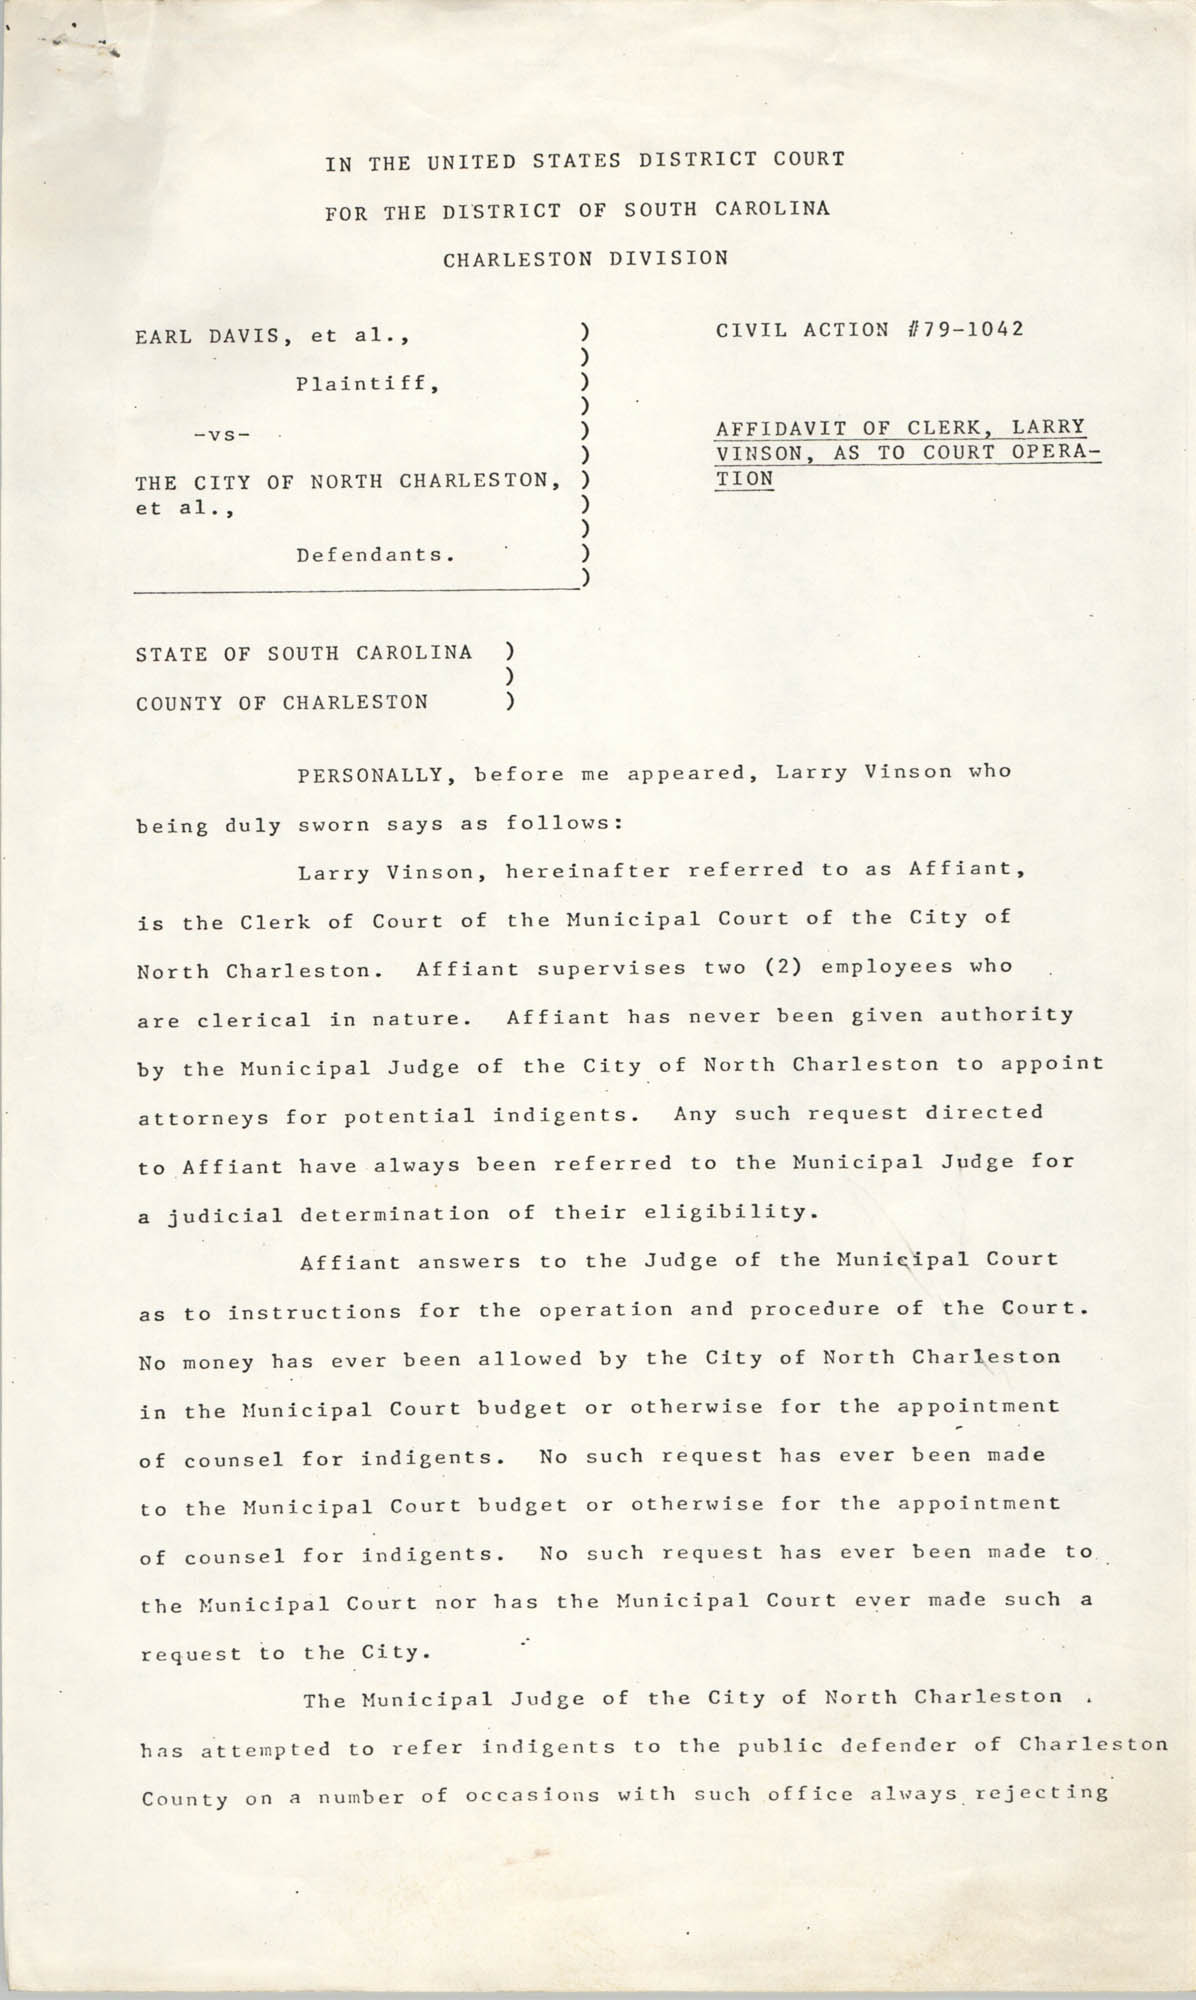 Civil Action No. 79-1042 Affidavit of Clerk, Charleston Division, Earl Davis, Jr. vs. The City of North Charleston